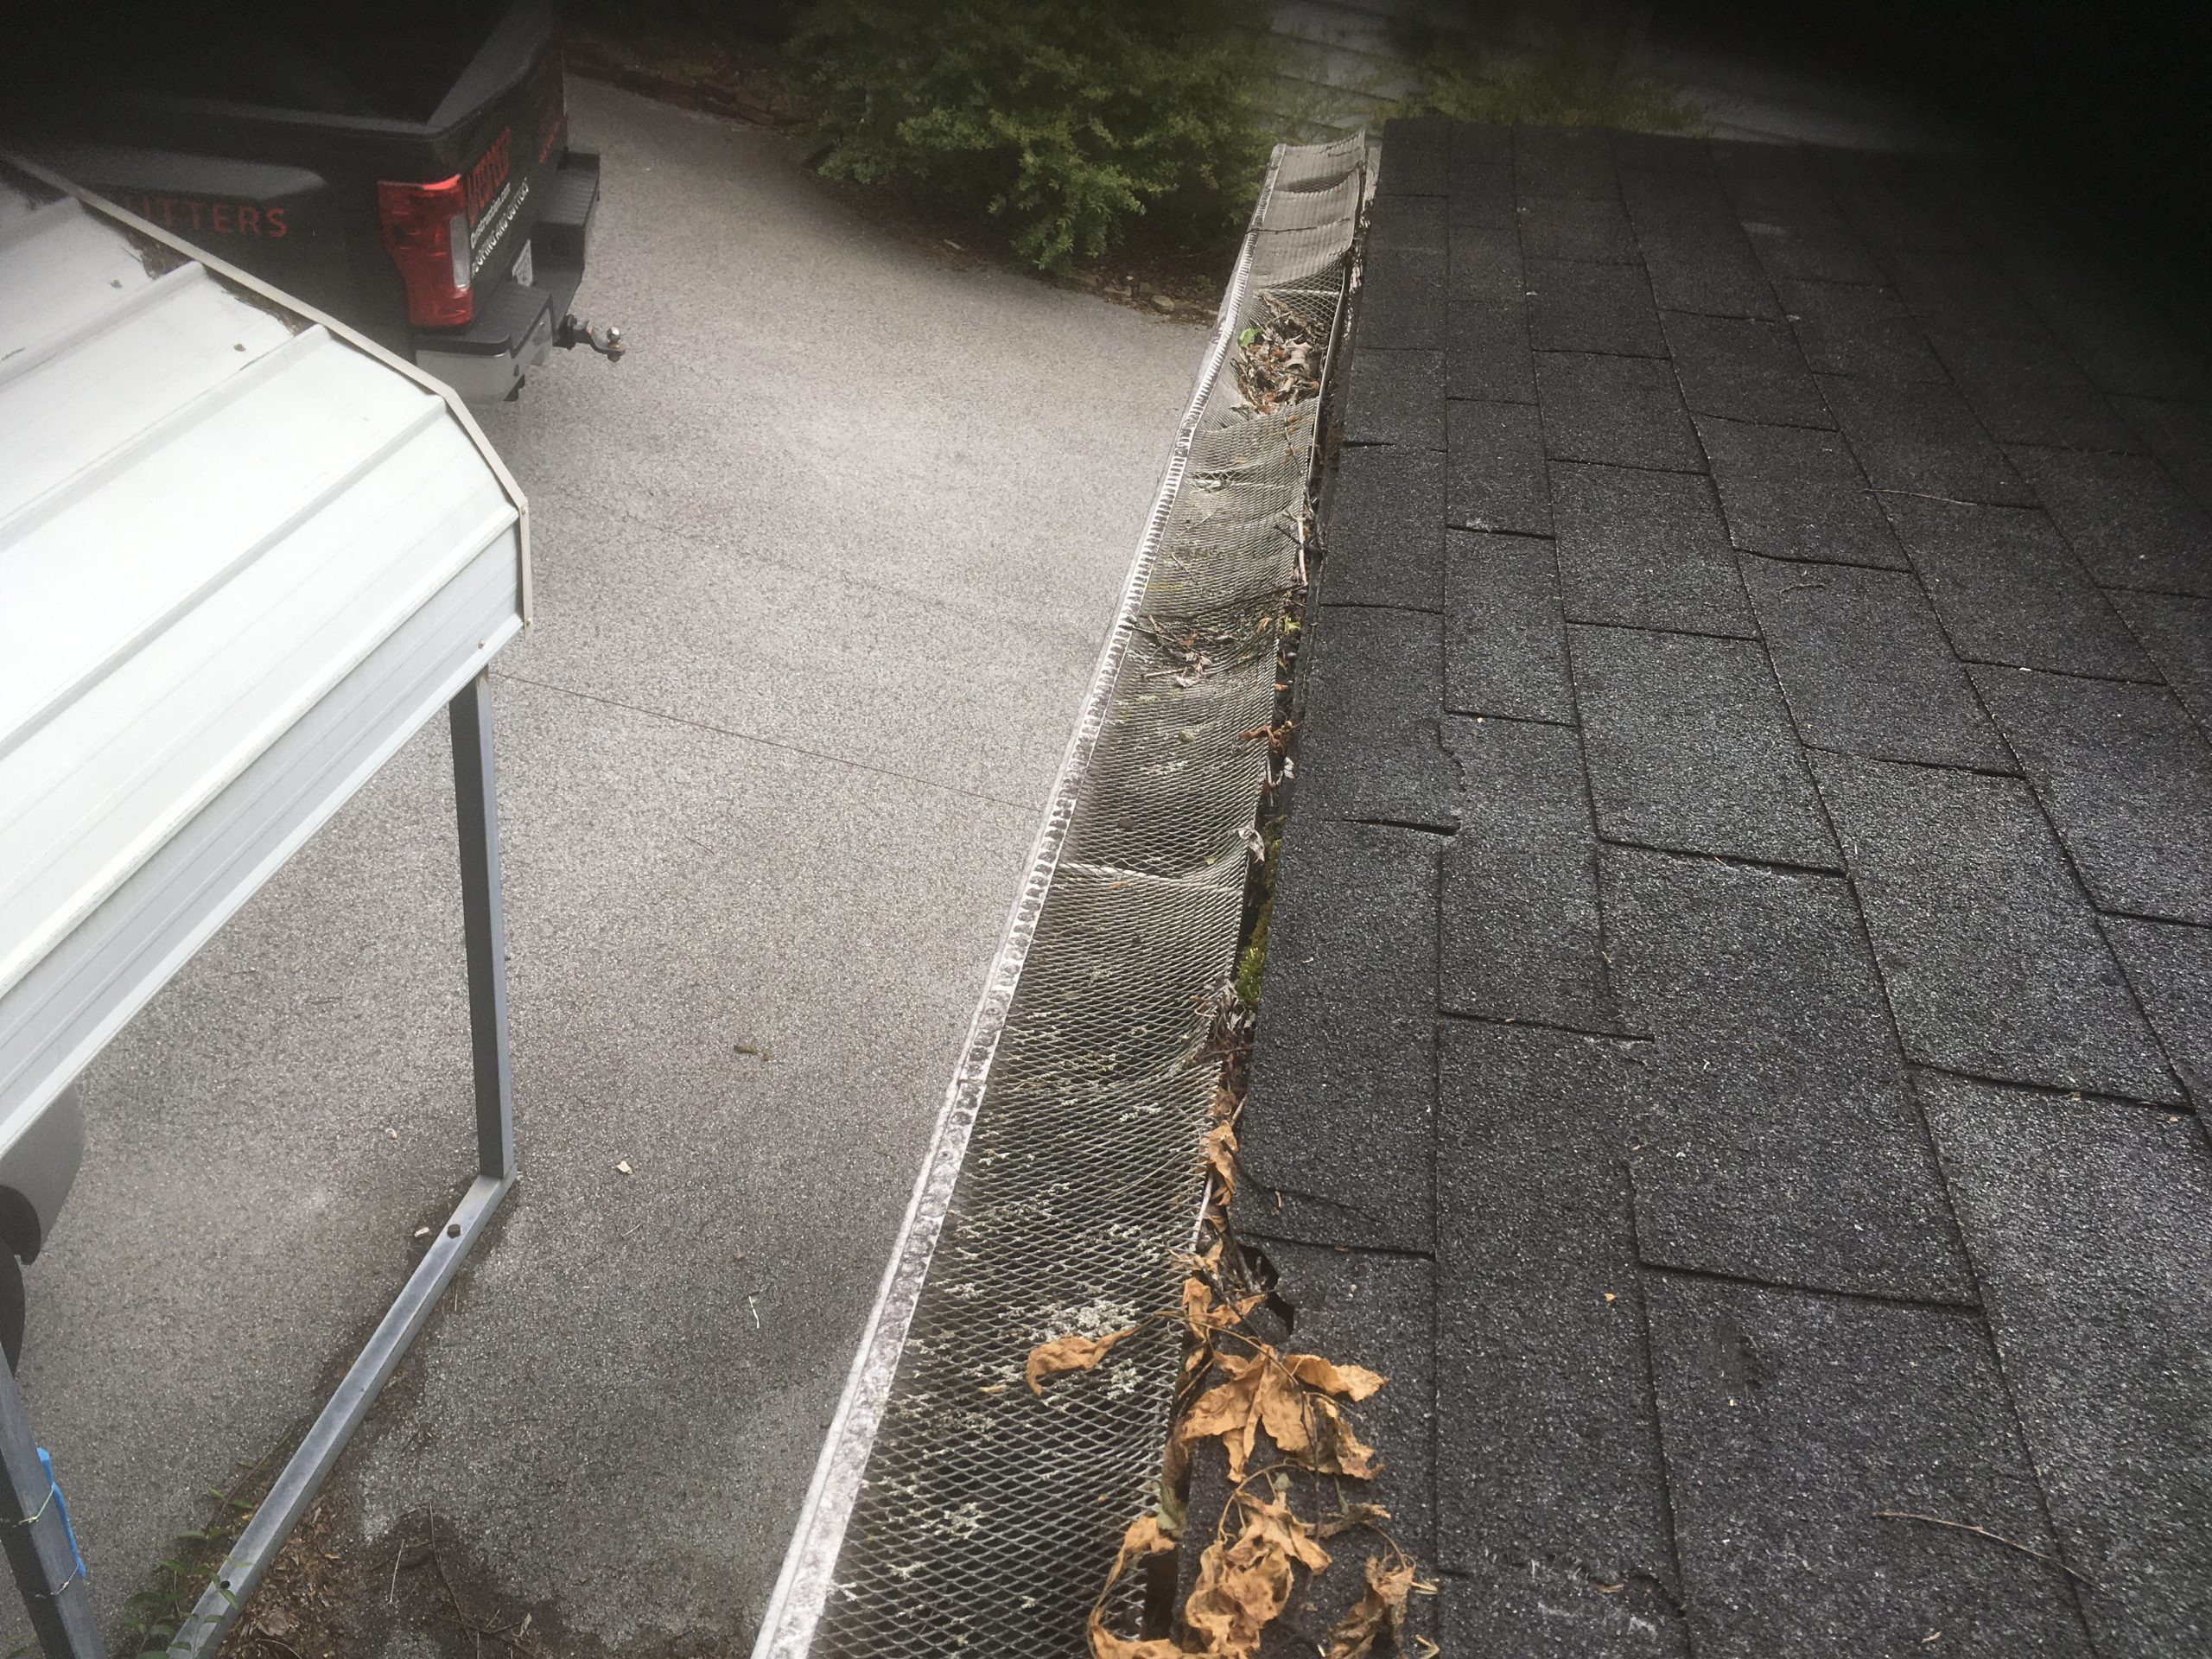 Gutter guards that are no longer functioning and allowing debris in.